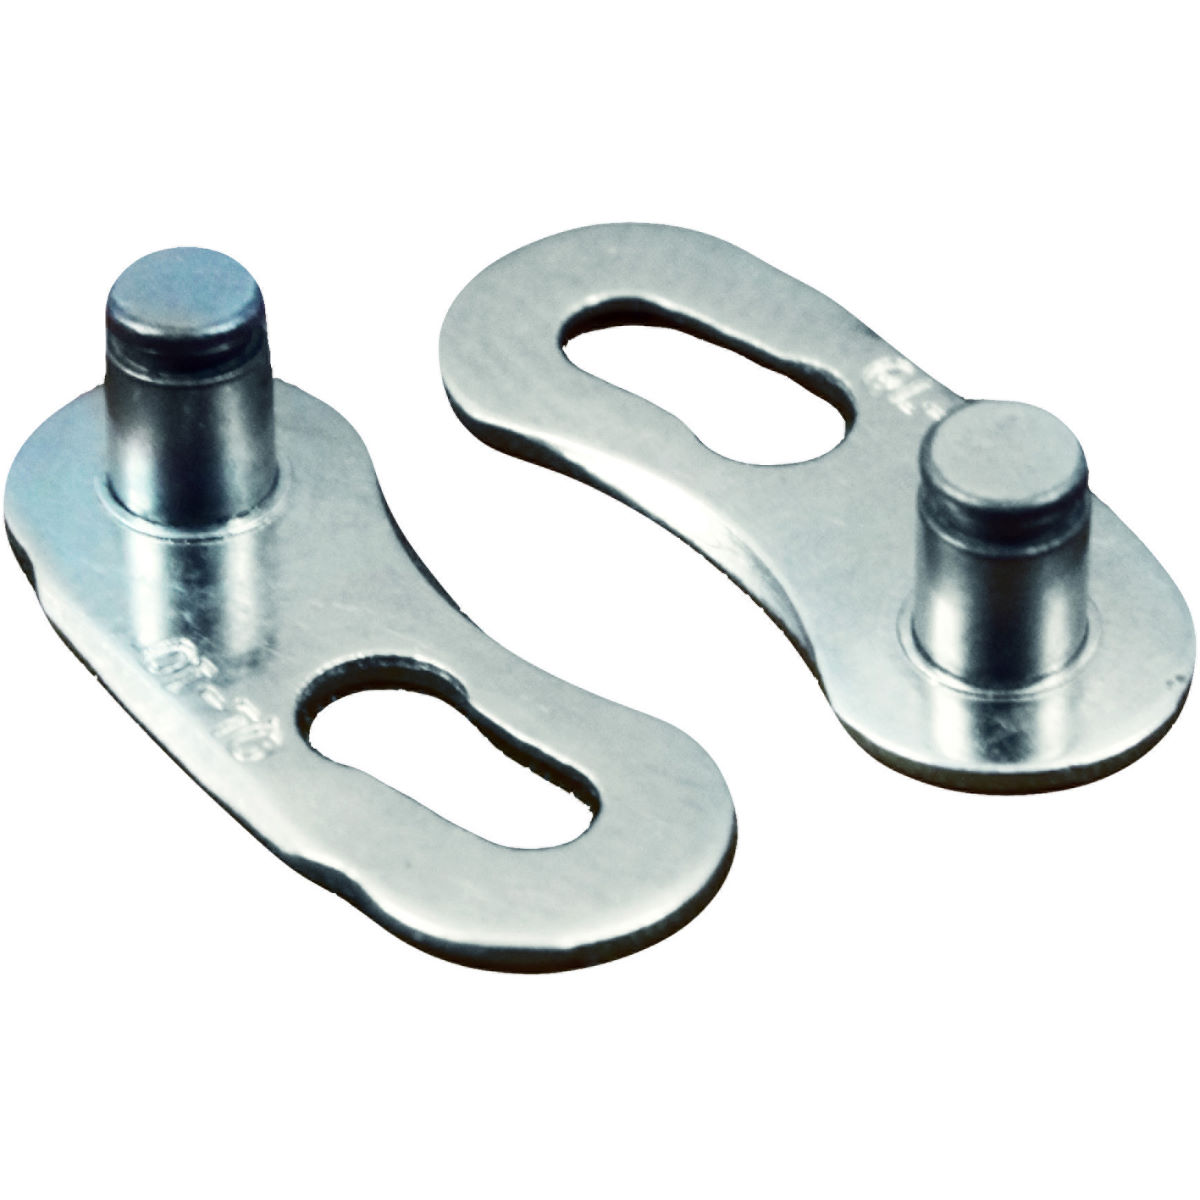 Clarks Chain Link Connectors   Chain Links